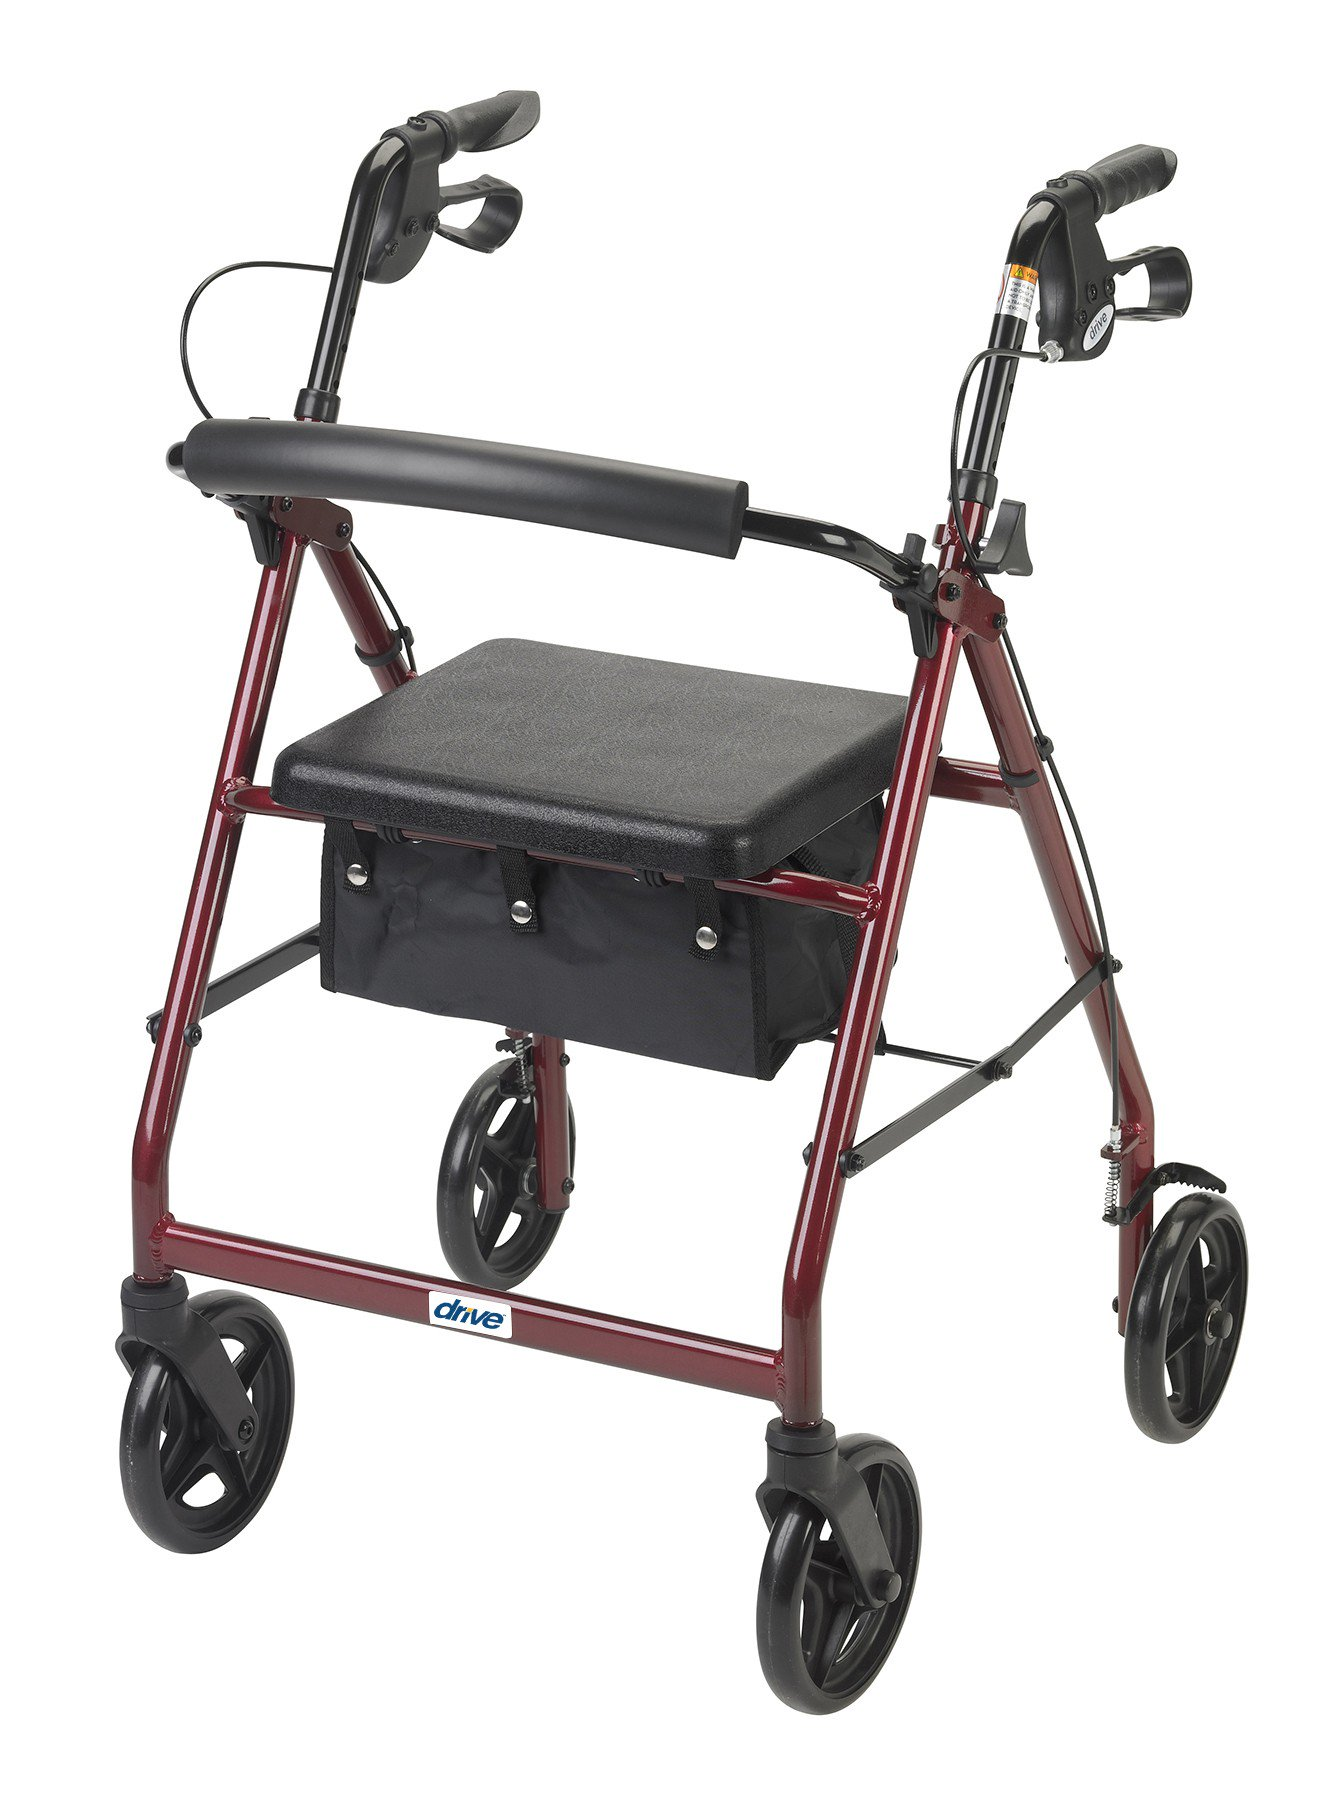 4 Wheel Rollator drive Blue Adjustable Height Aluminum Frame, Drive R728BL - EACH